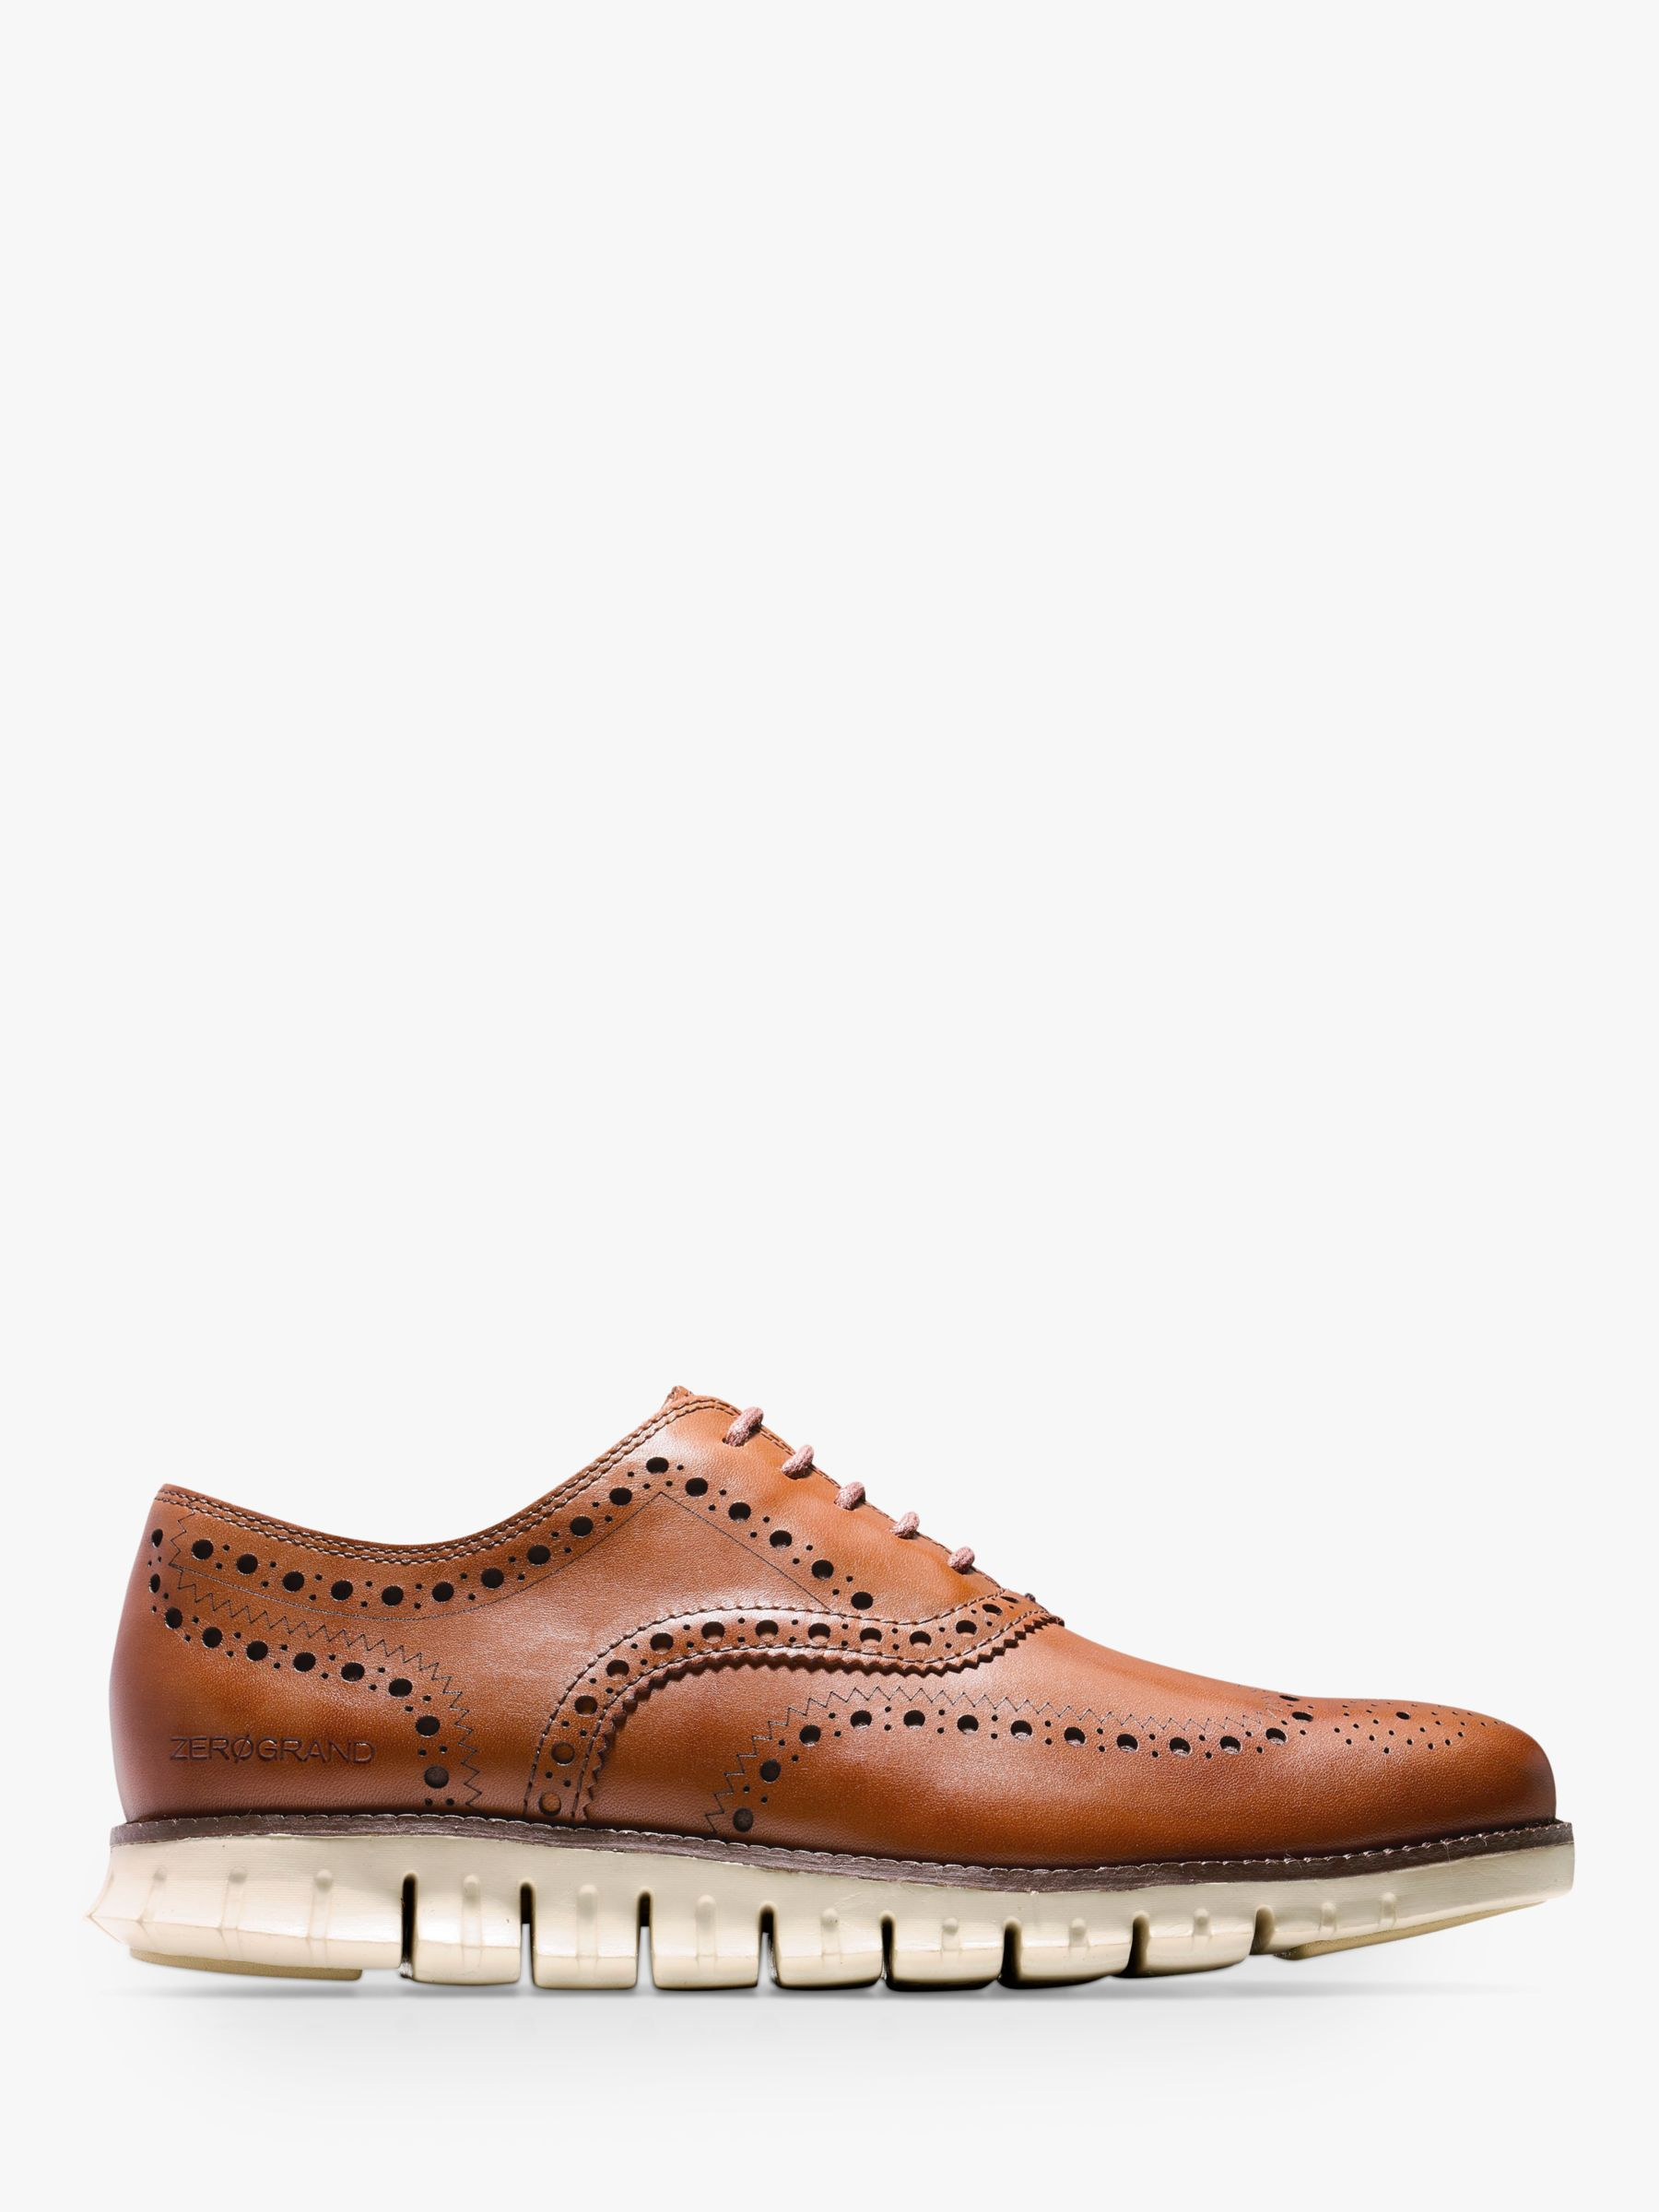 Cole Haan Cole Haan Zerogrand Wingtip Leather Oxford Shoes, British Tan